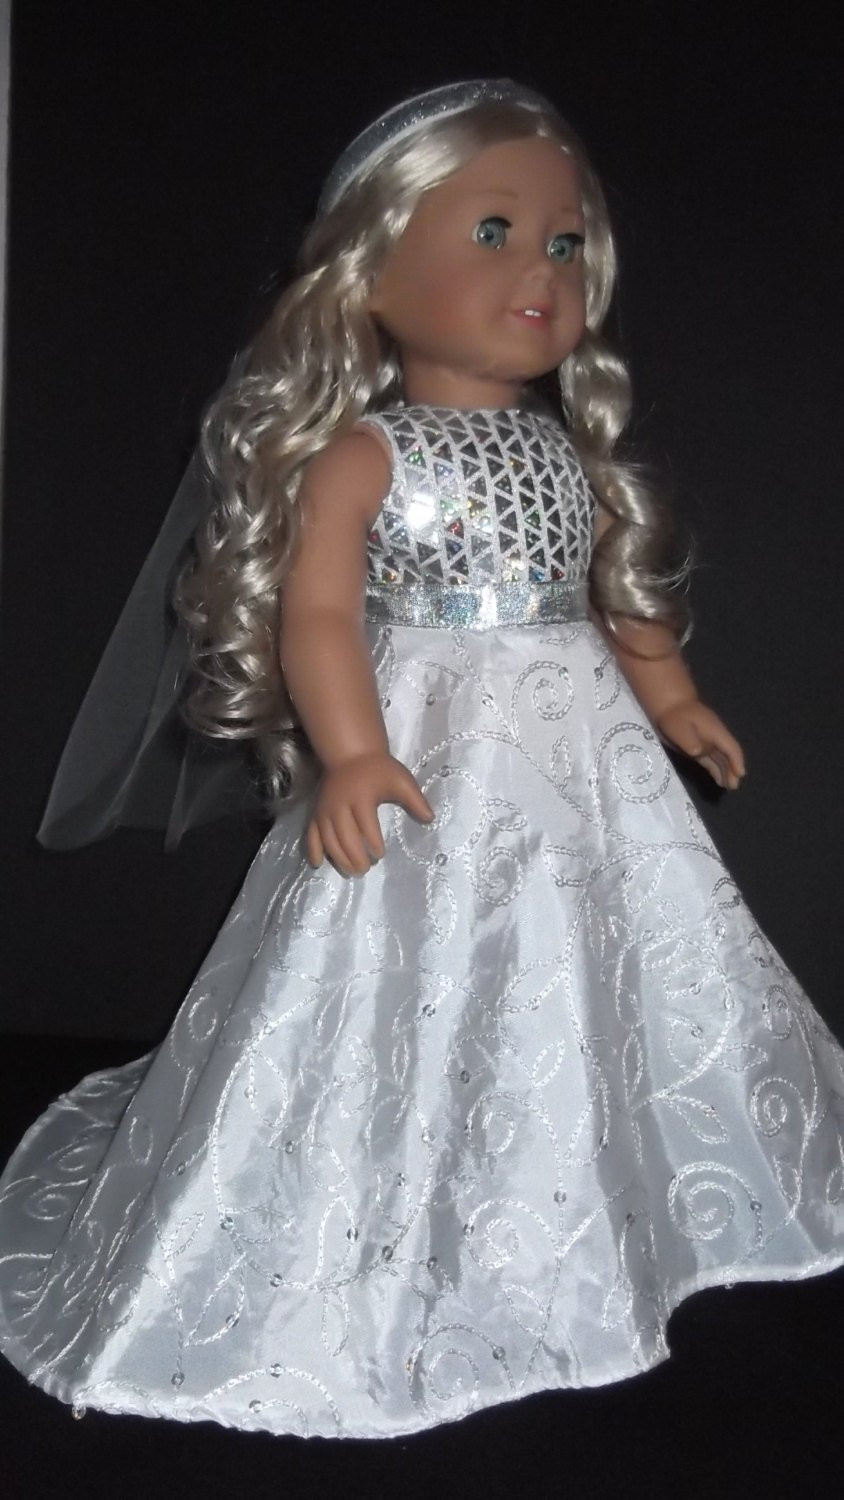 Best Of American Girl Doll Clothes Wedding Gown and Veil 257 American Girl Doll Wedding Dress Of New American Girl Doll Clothes Traditional Wedding Gown Dress American Girl Doll Wedding Dress